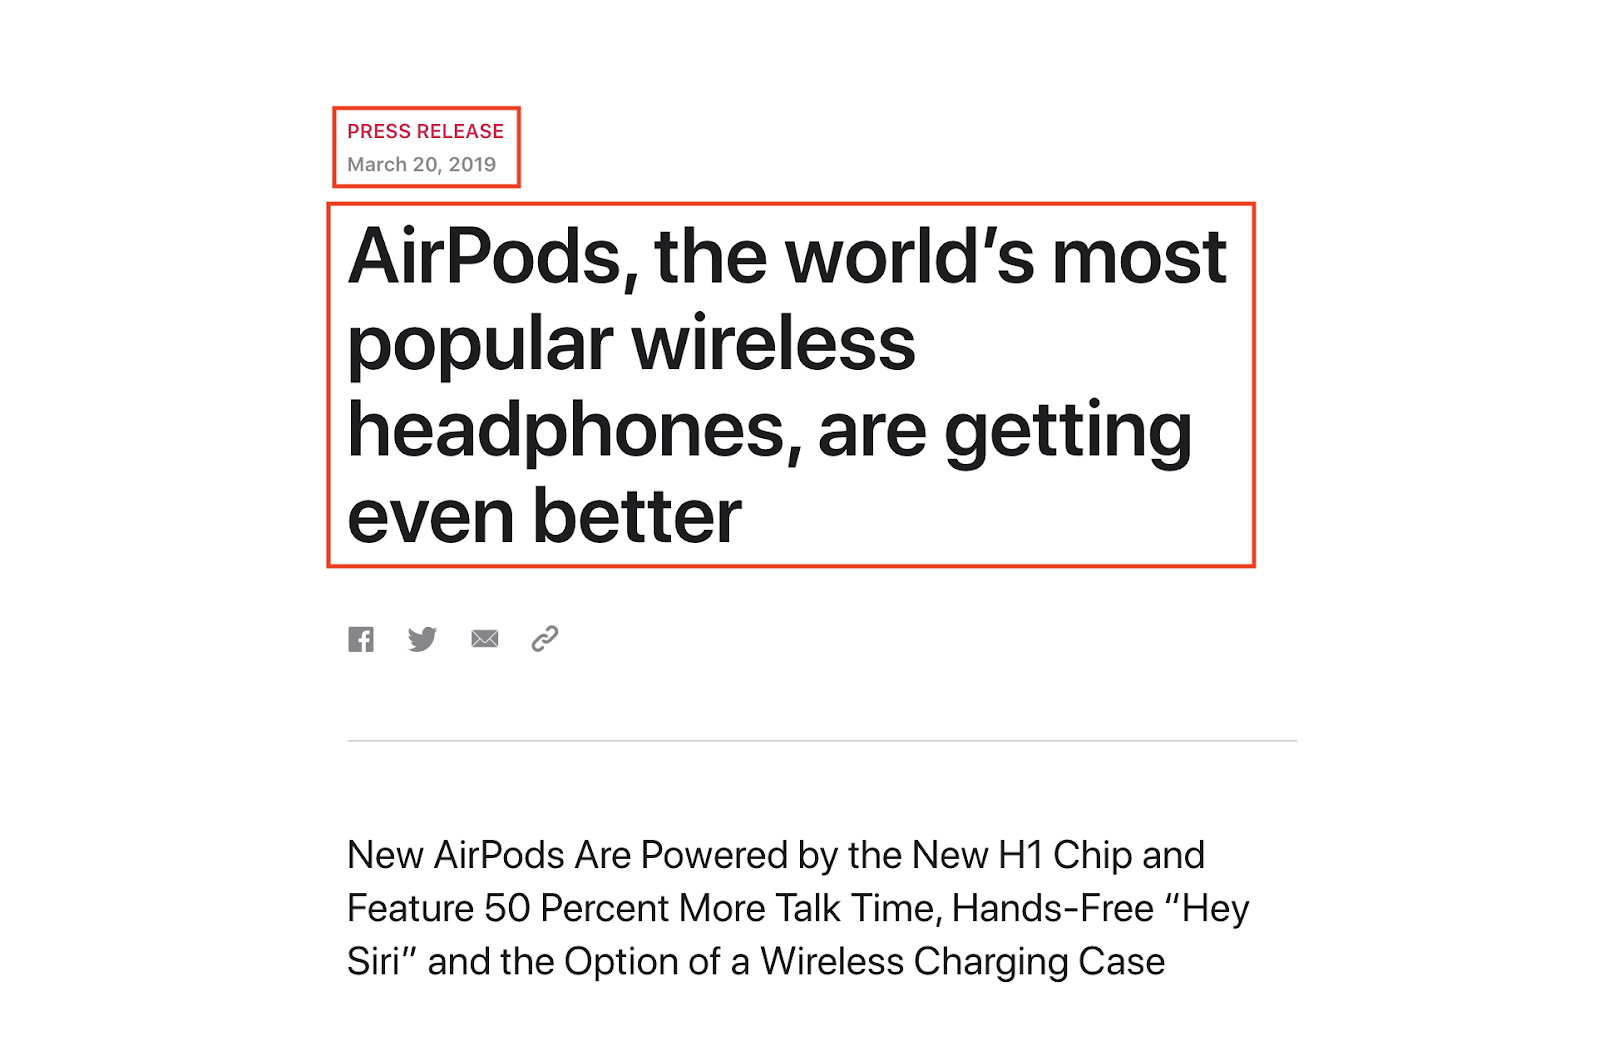 Apple Press Release on Airpods Published on March 2019